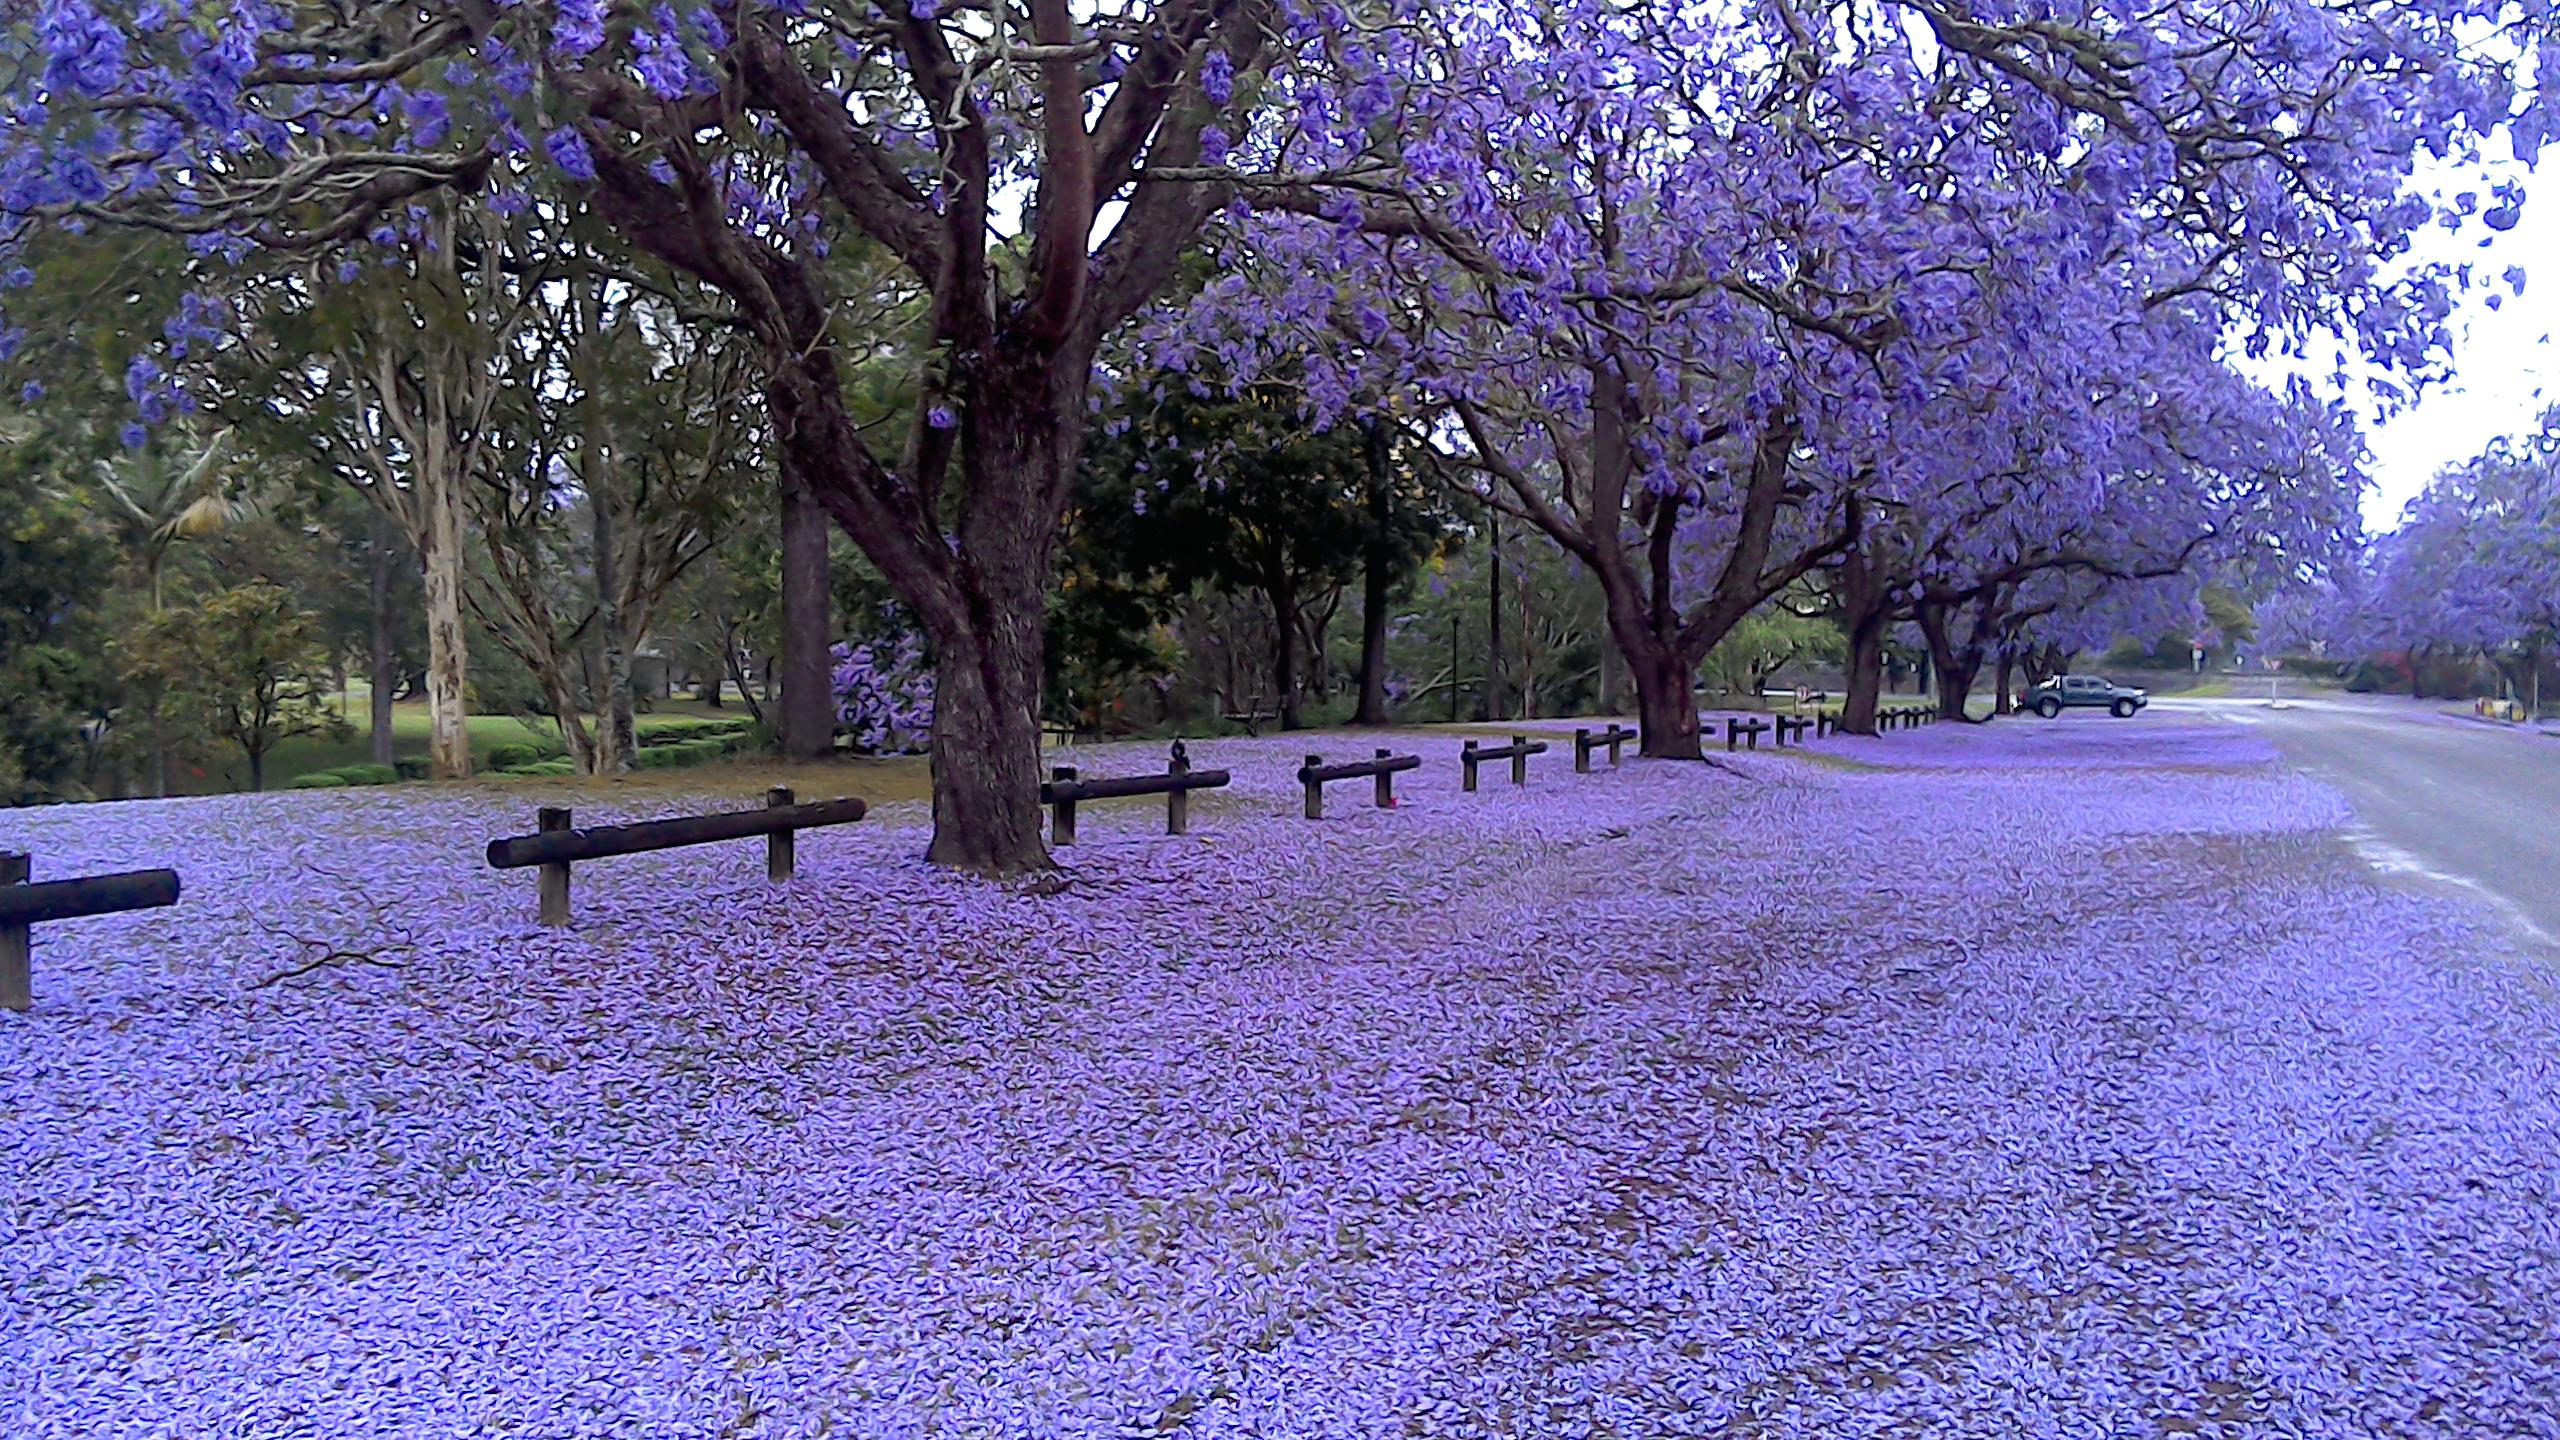 Take Another Look At Buenos Aires With Its Dazzling Jacaranda Trees